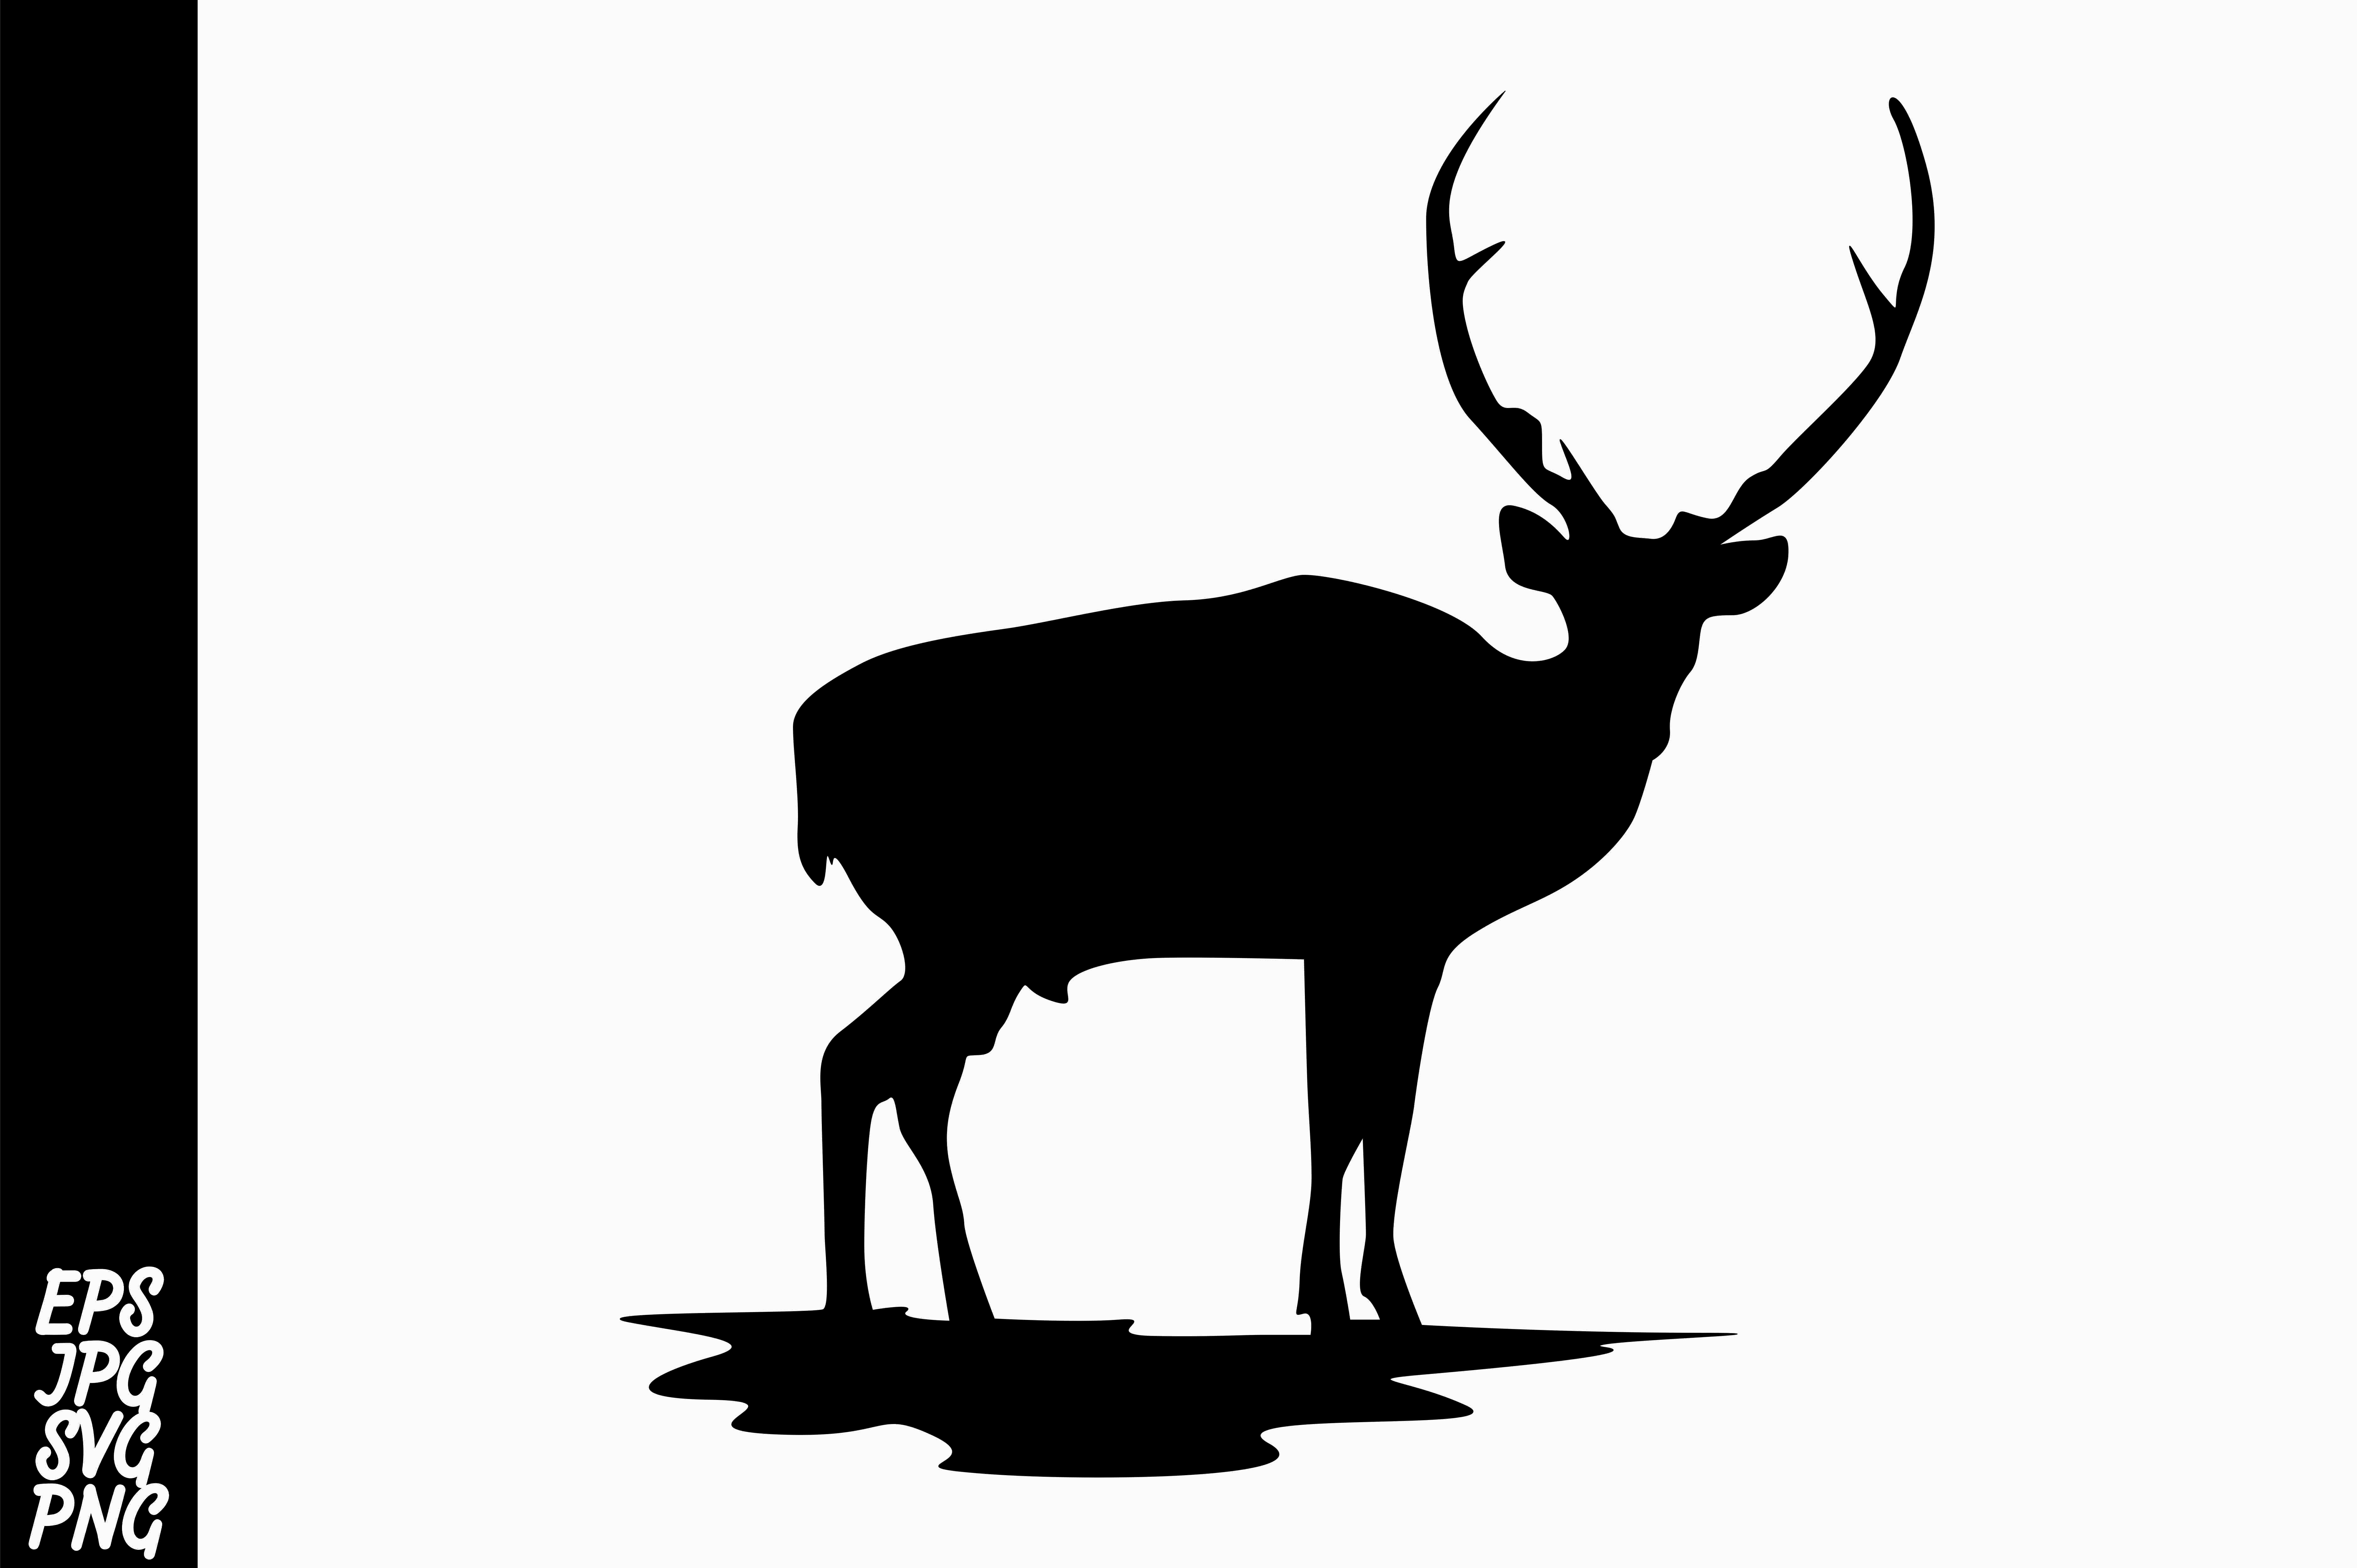 Download Free Deer Silhouette Svg Graphic By Arief Sapta Adjie Ii Creative SVG Cut Files